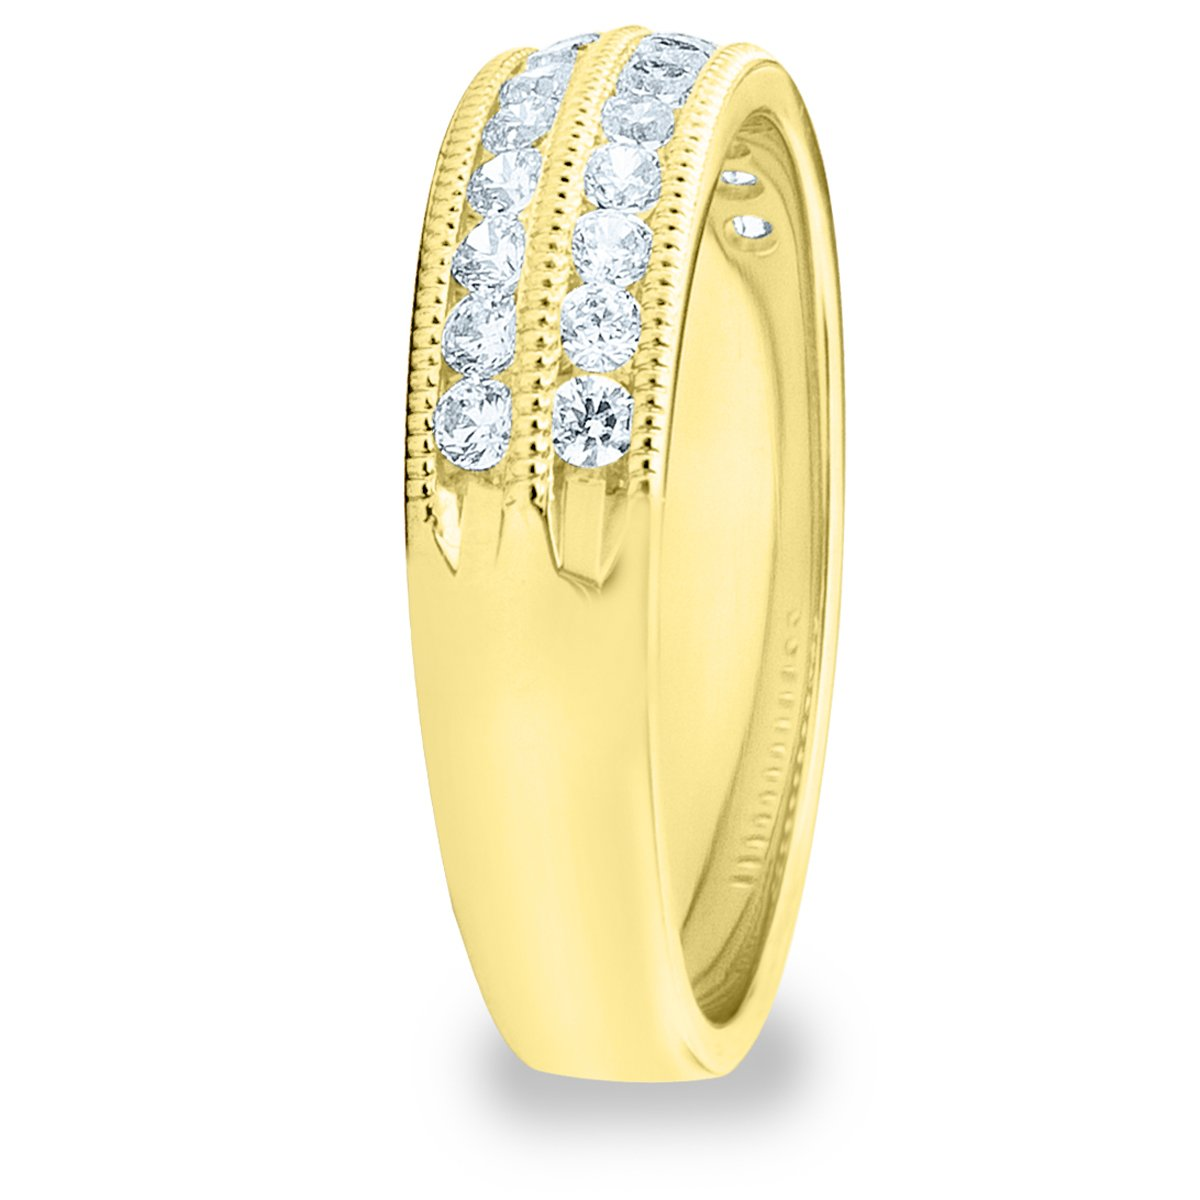 .50CTTW Double Row Diamond Ring, 1/2ct 2-Row Wedding Anniversary Ring in 10K Yellow Gold - Finger Size 6 by Eternity Wedding Bands